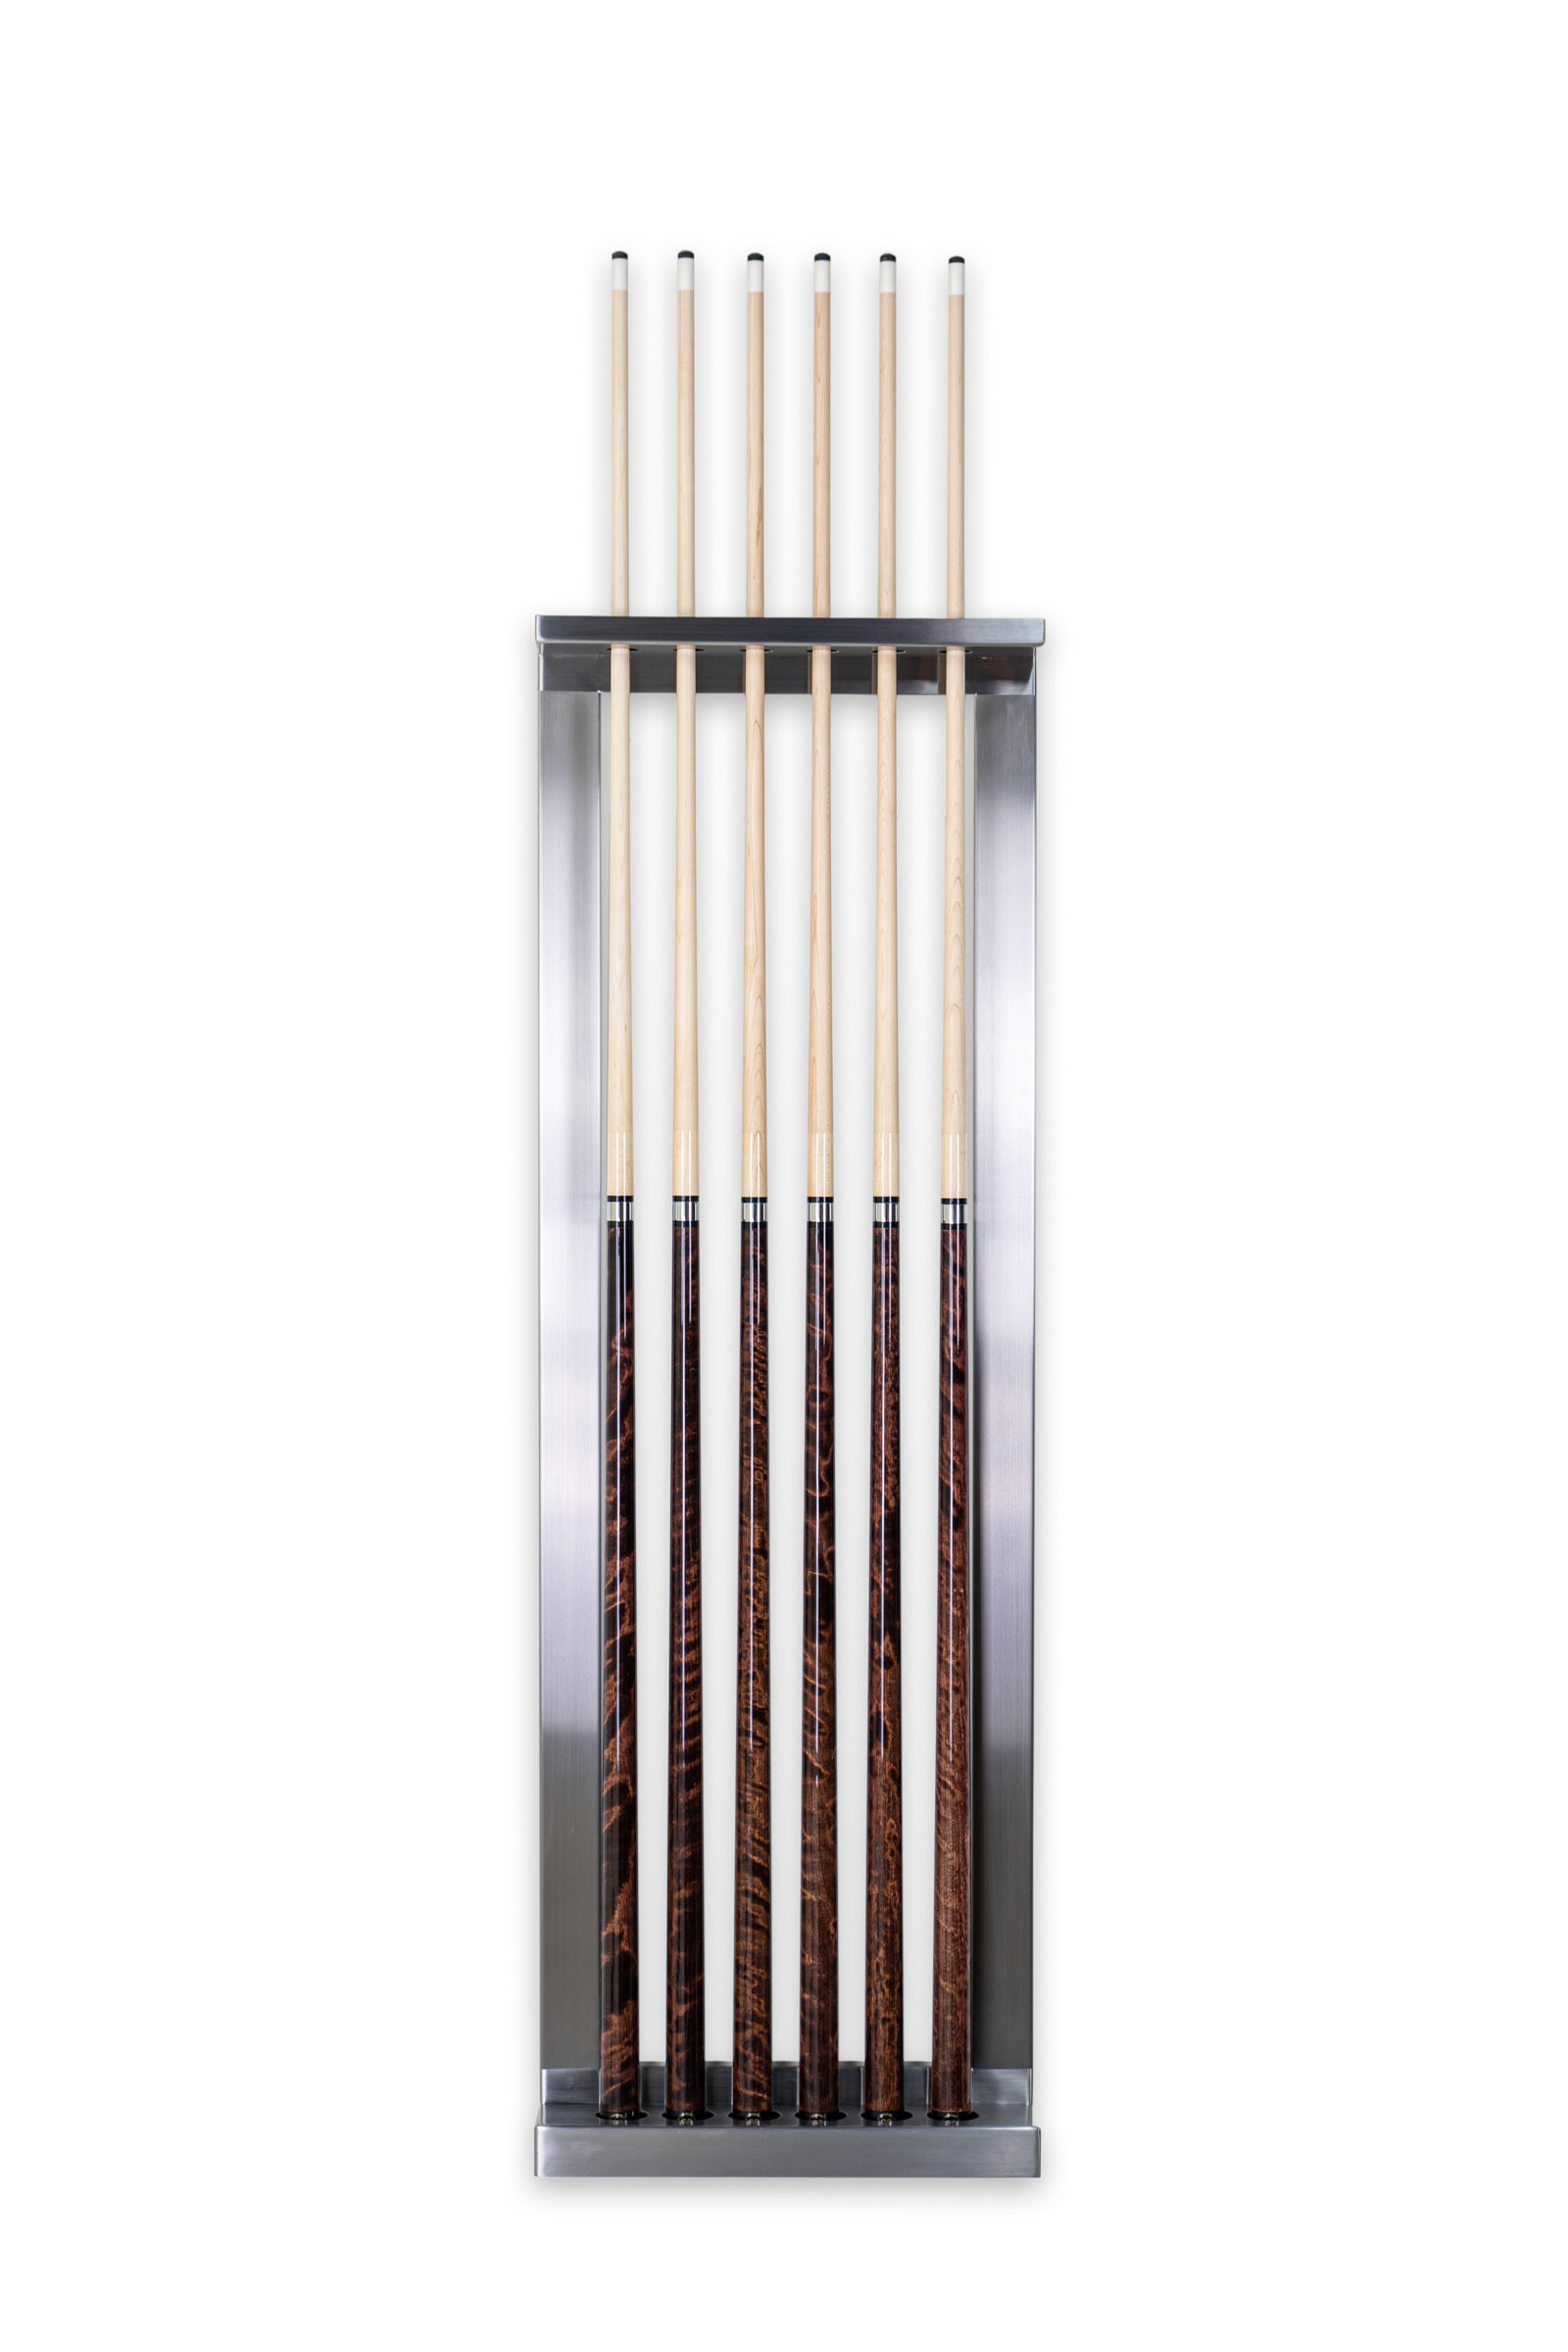 Stainless Pace Wall Rack - Blatt Billiards